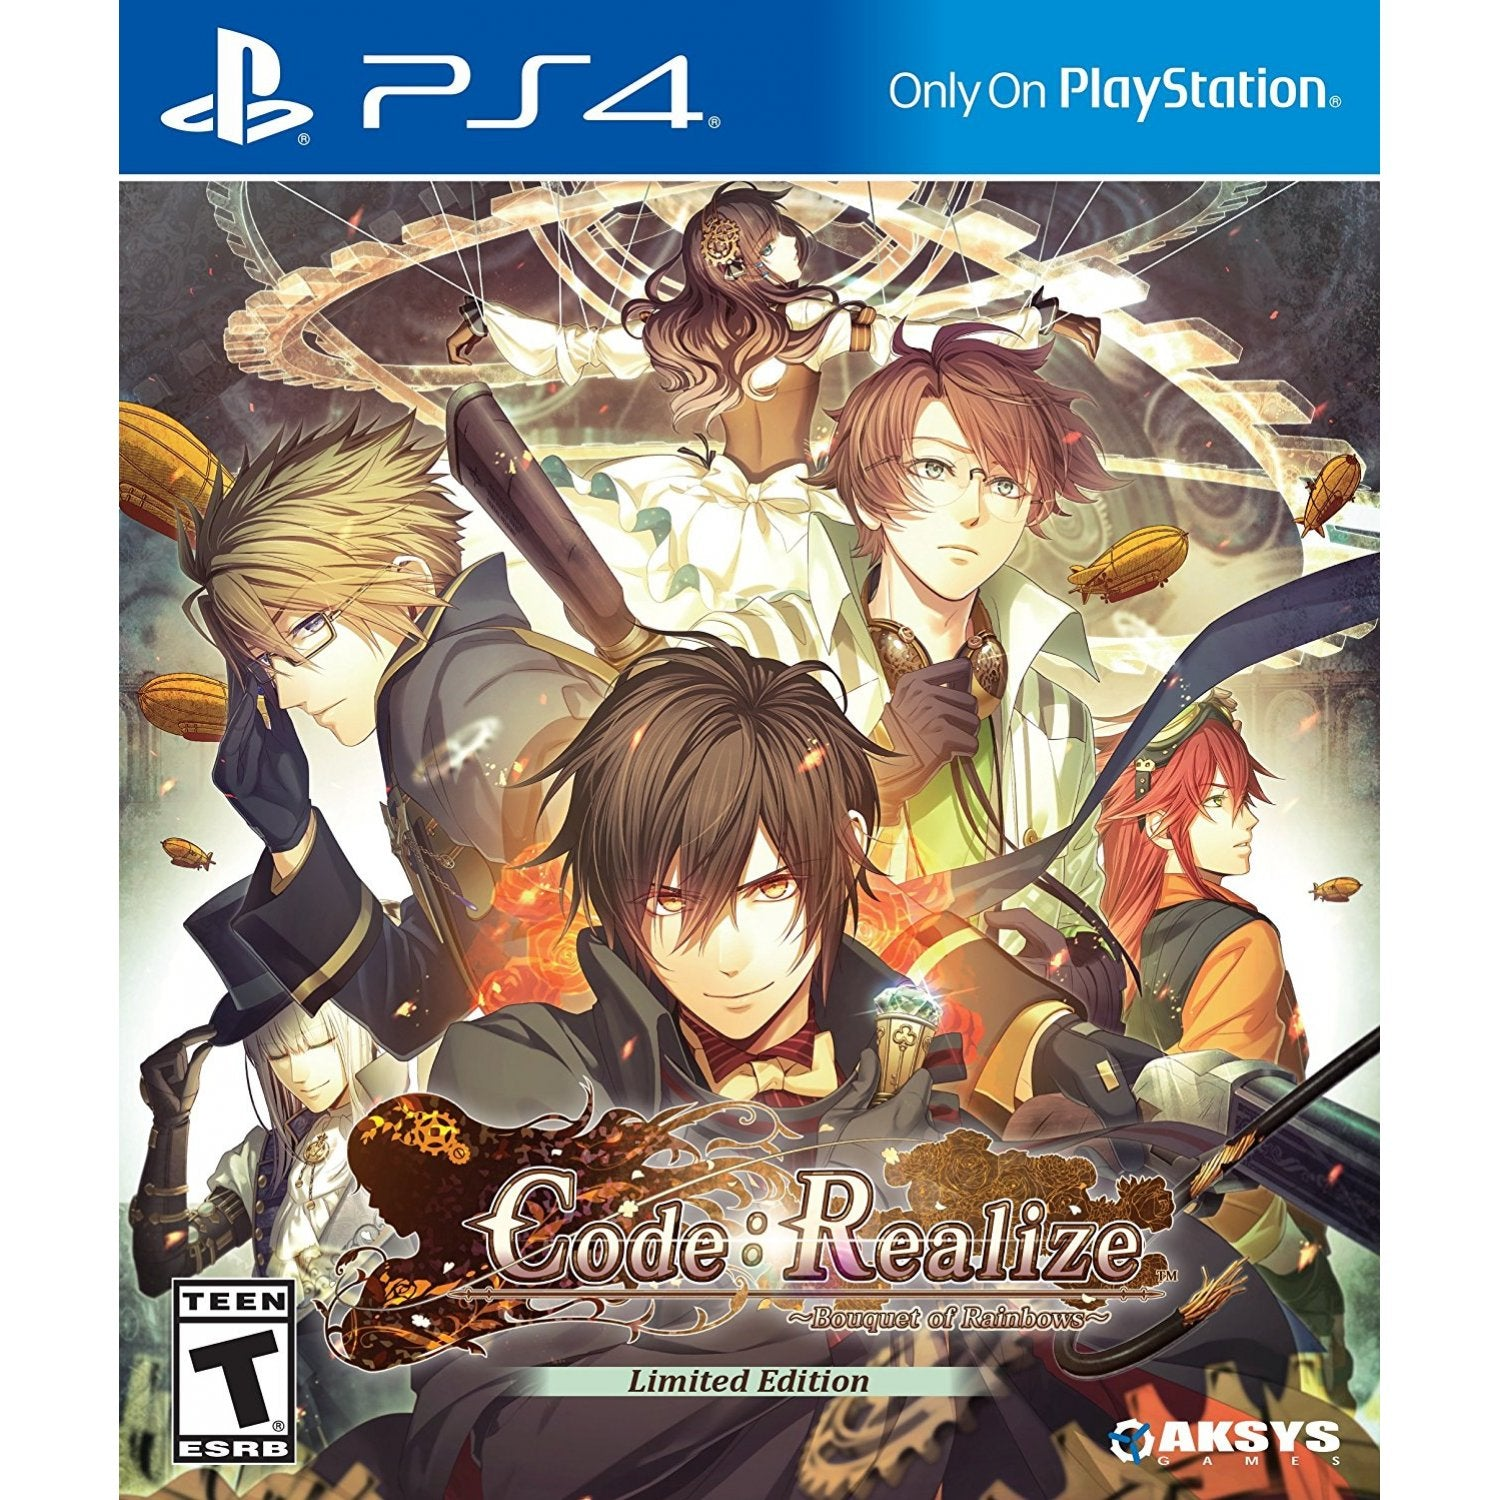 Category Game Tagged Ps4 Page 4 Bravo Team Vr Aim Controller Region 3 English Code Realize Bouquet Of Rainbows Limited Edition